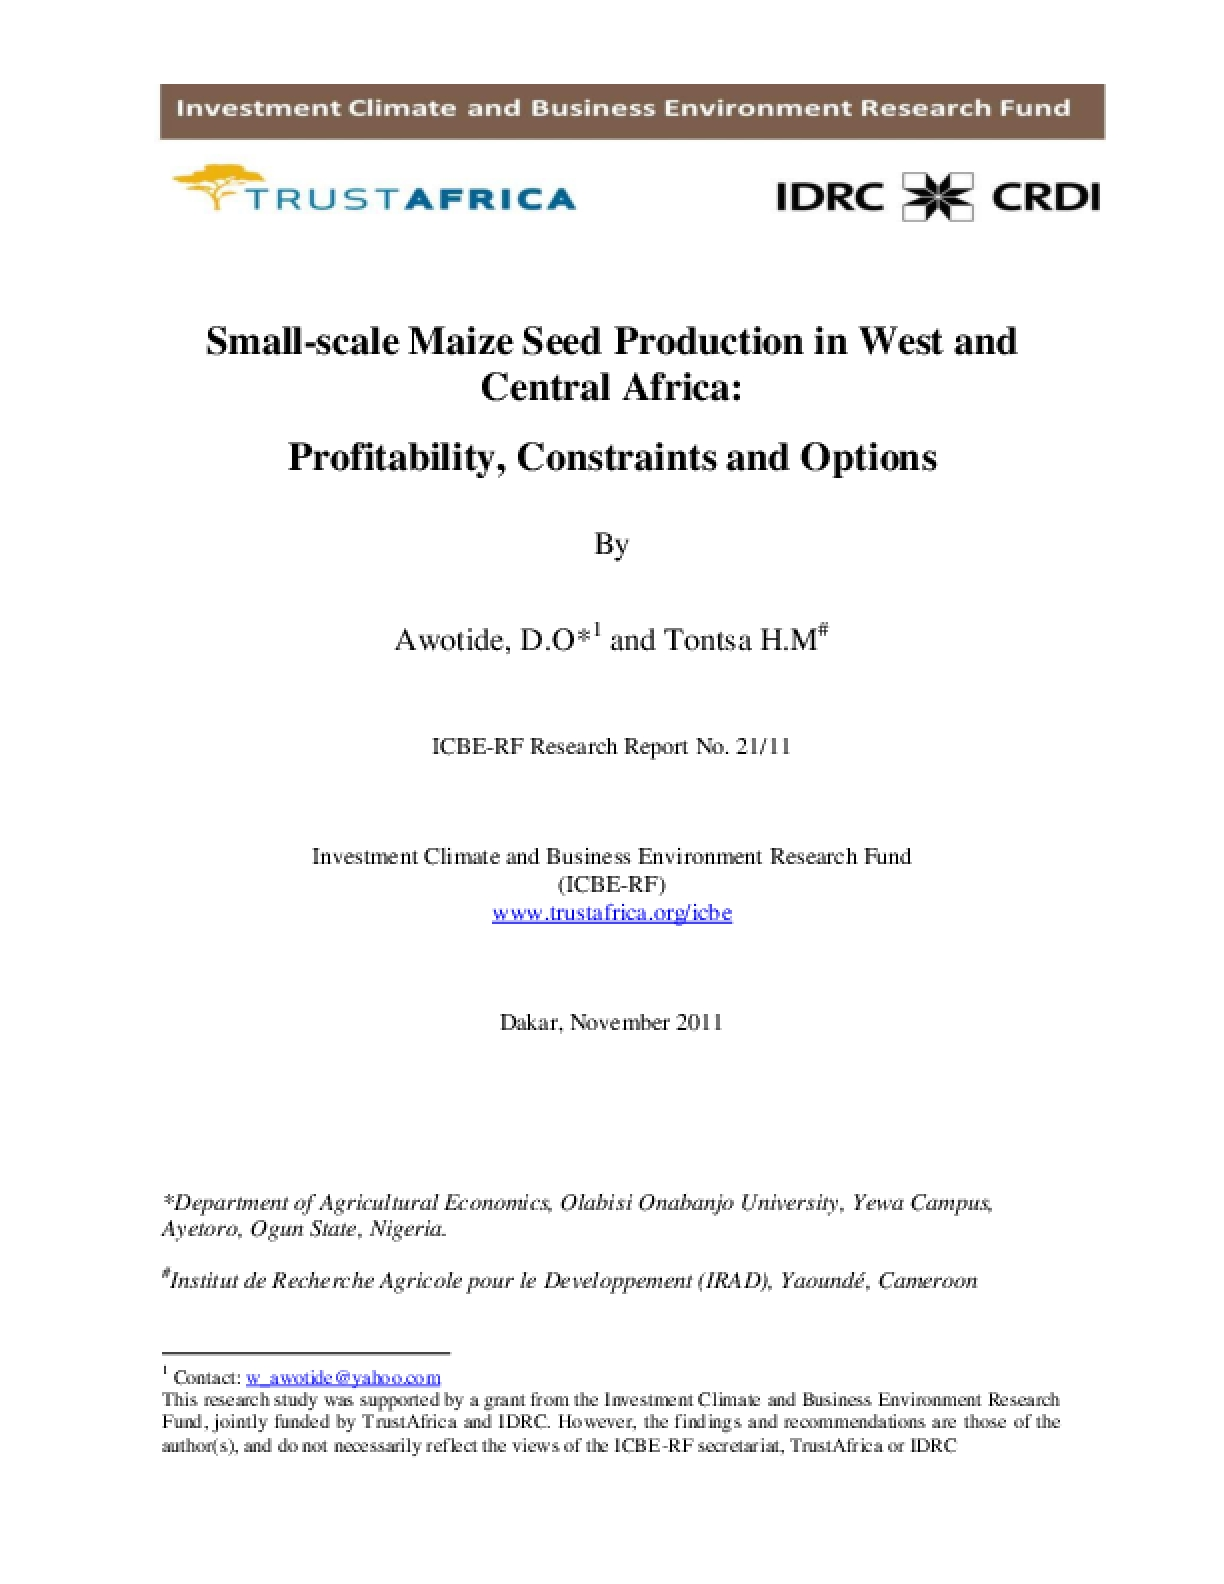 Small-scale Maize Seed Production in West and Central Africa: Profitability, Constraints and Options